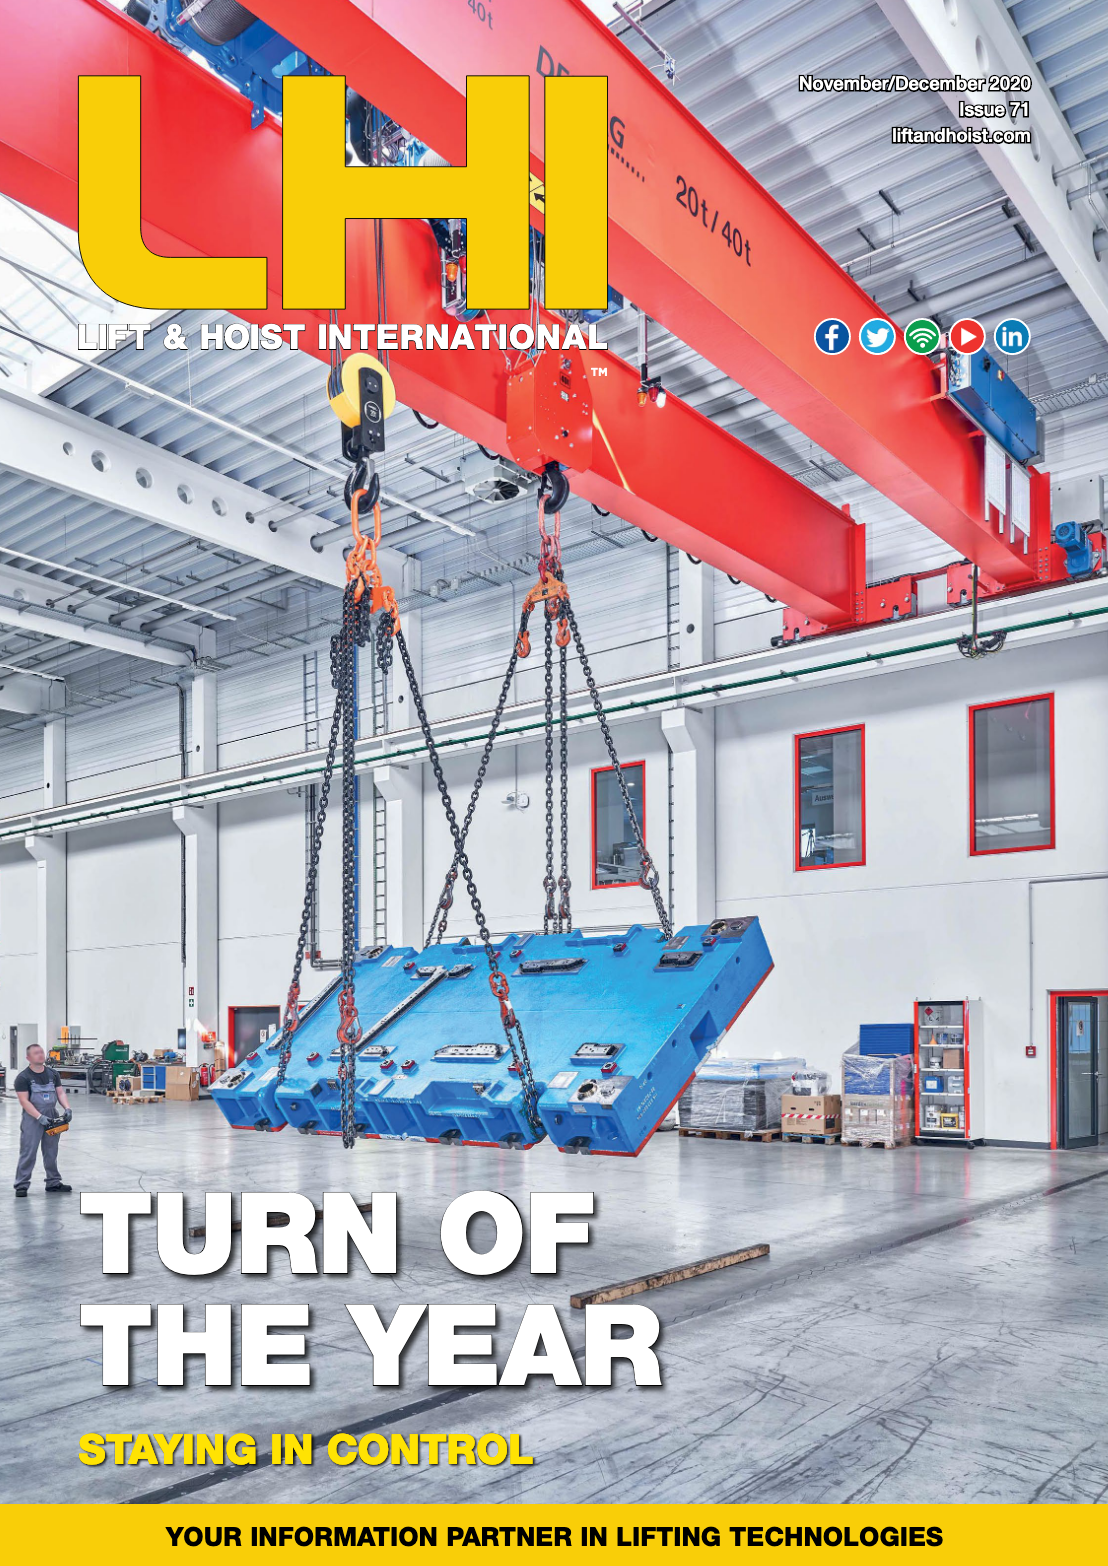 Lift & Hoist International is an overhead crane and hoist magazine which also writes about other lifting technologies